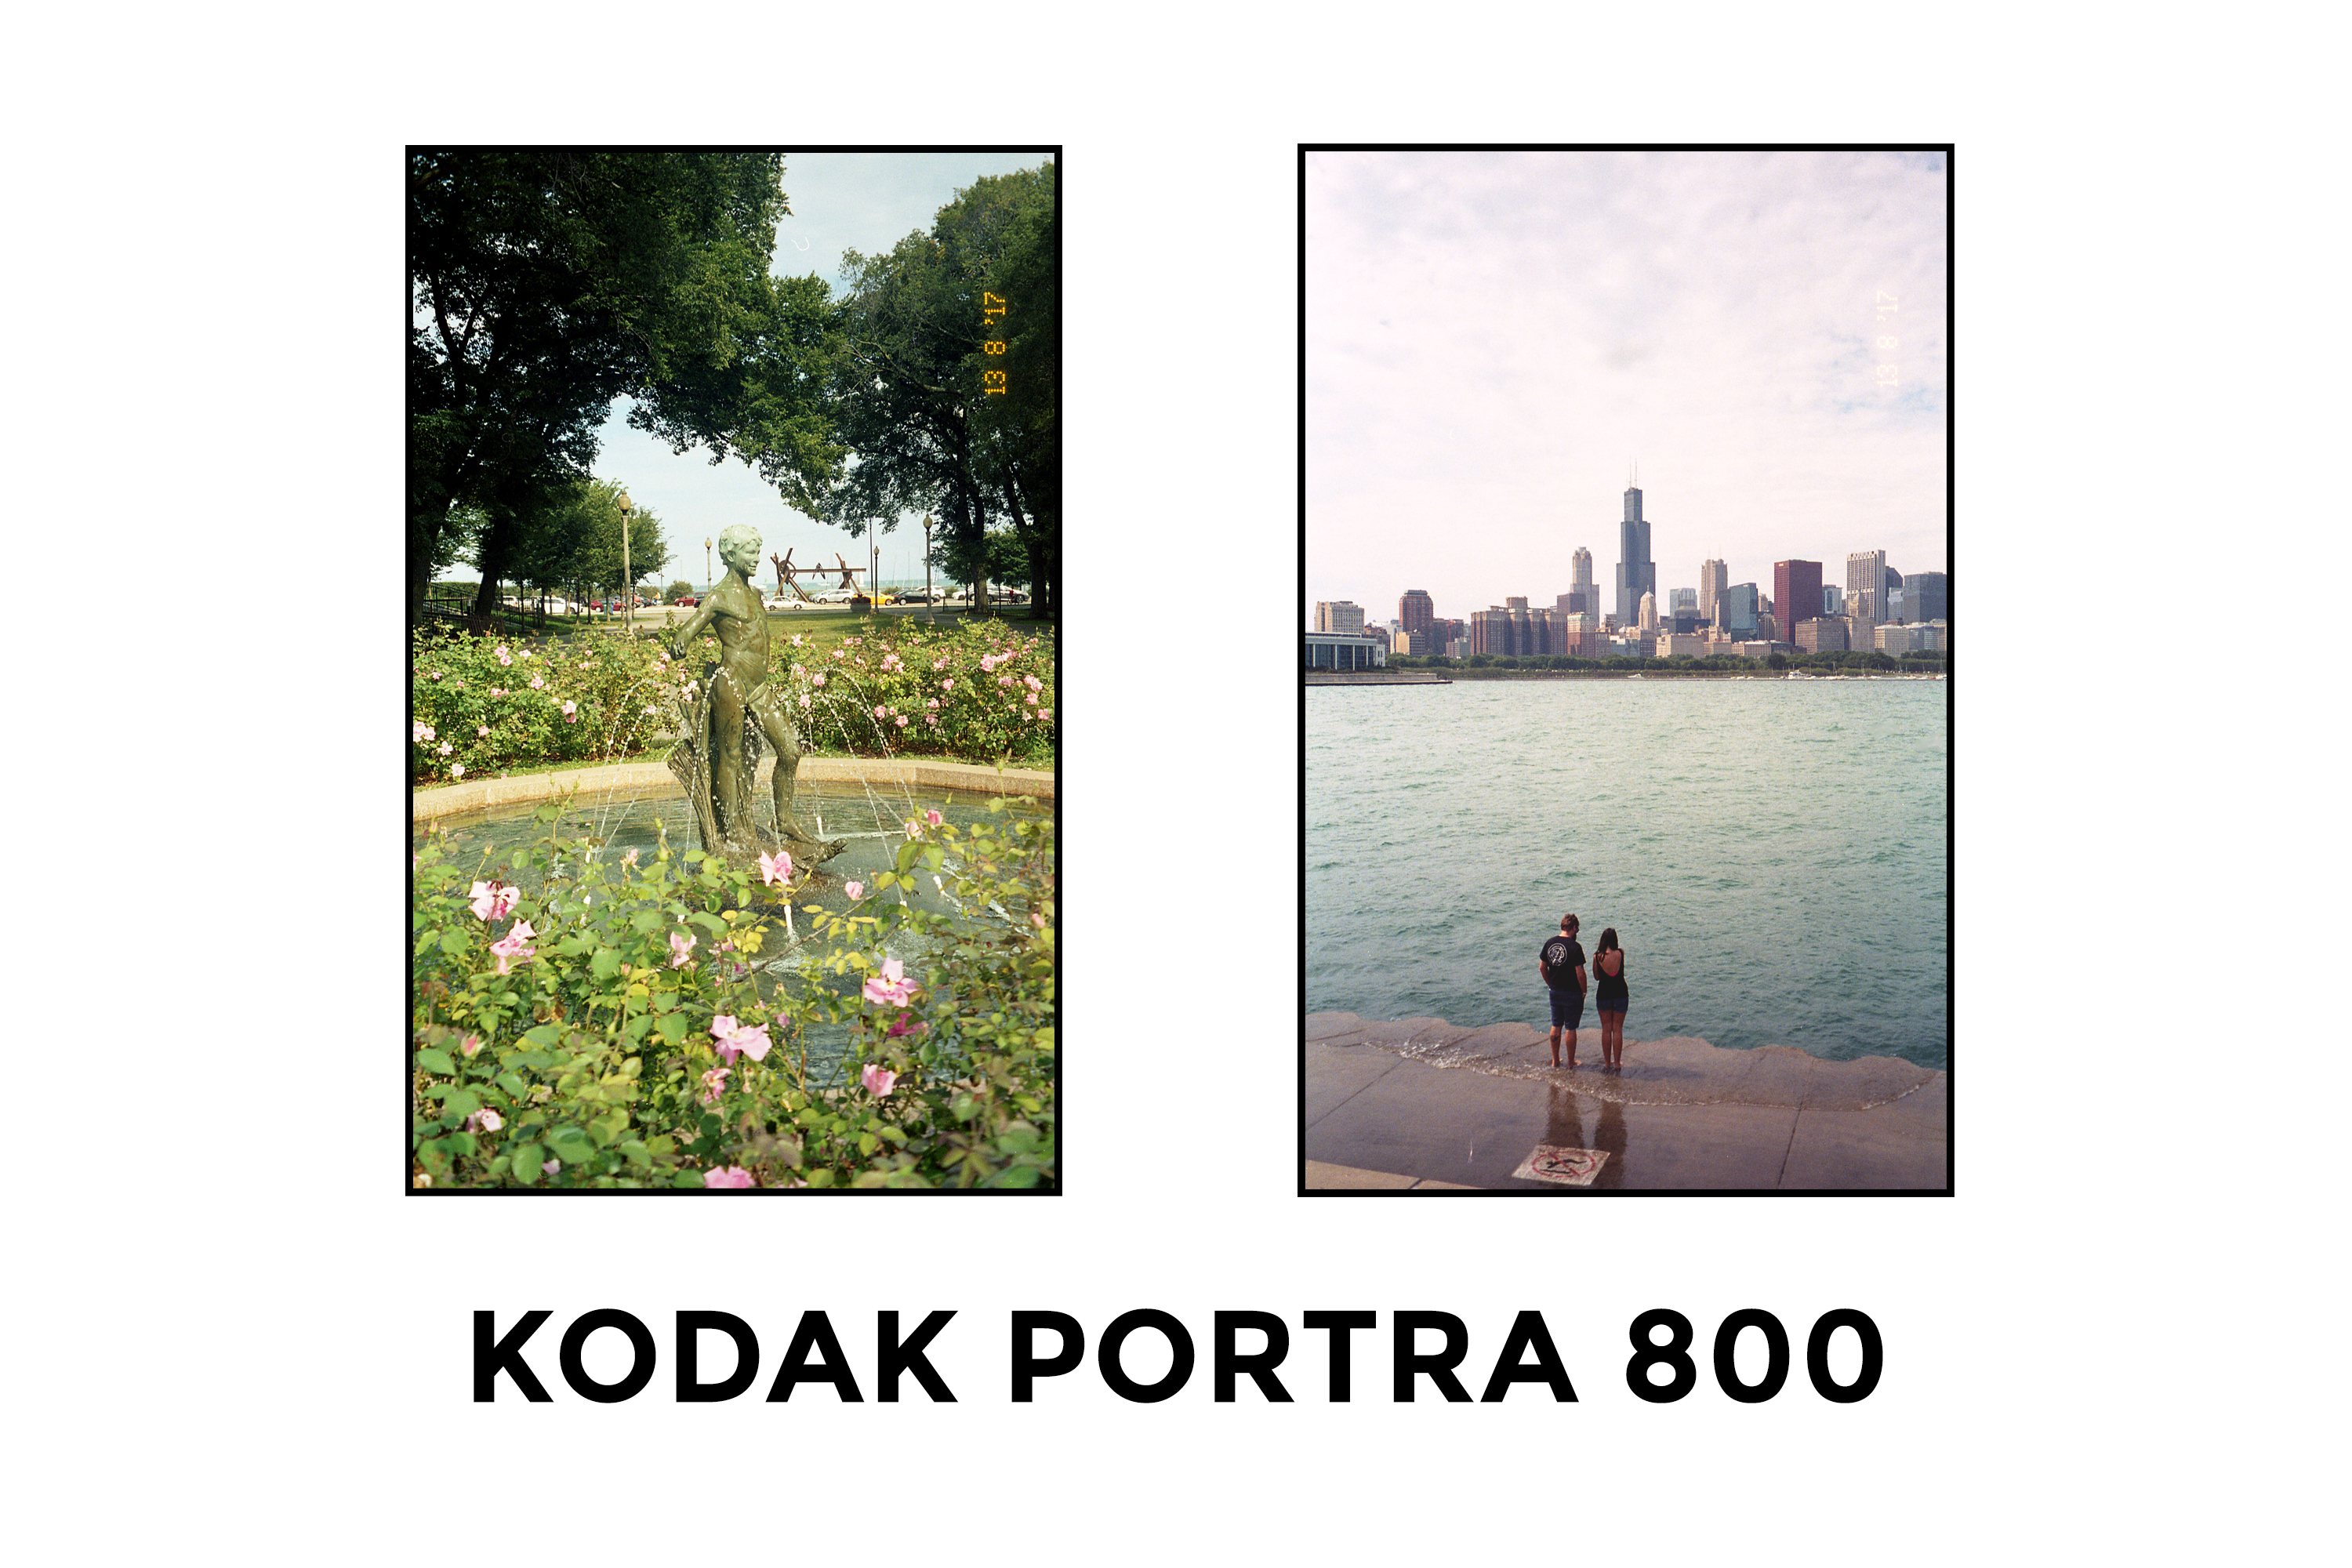 Kodak Portra 800 (3)- Fuji Superia 800 vs. Kodak Portra 800 Film Stock Review - FilterGrade Blog